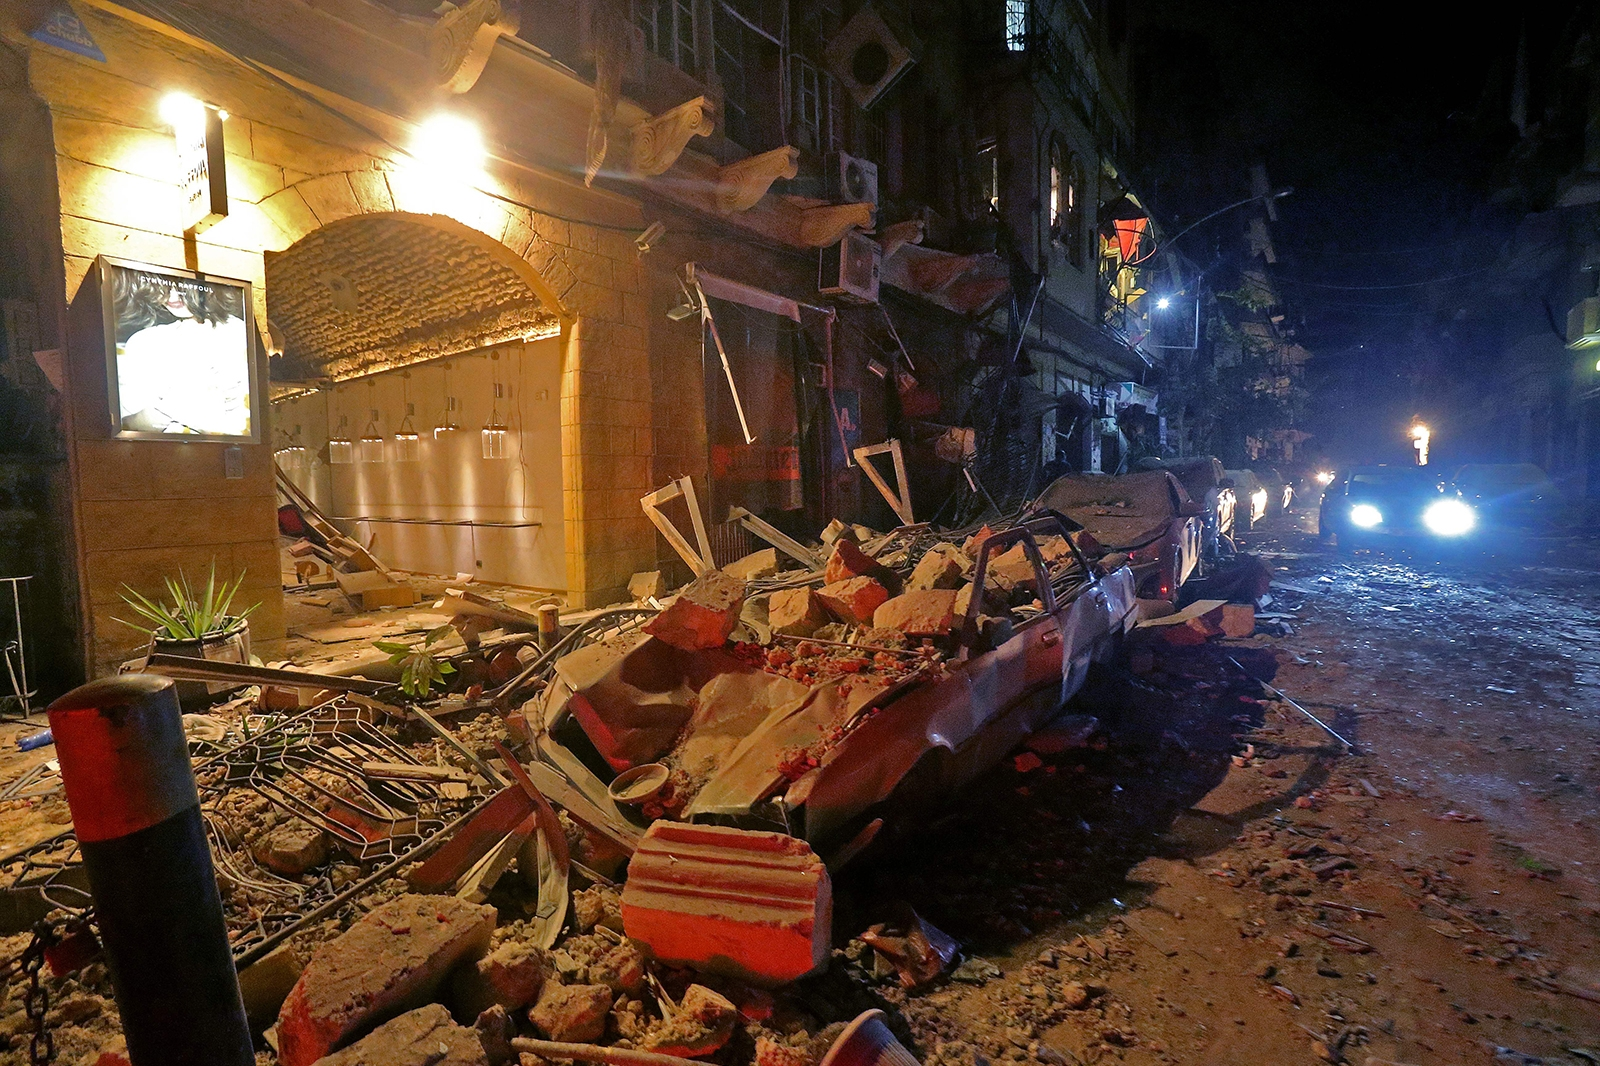 explosion at ammonium nitrate warehouse in lebanon 4000 injured nearly 80 died